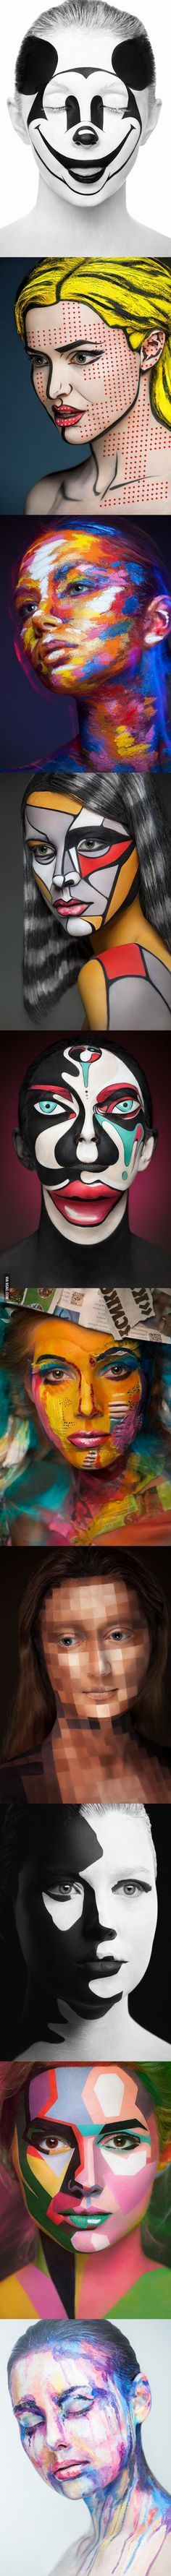 Amazing Makeup Transforms Models Into Iconic Works Of Art.